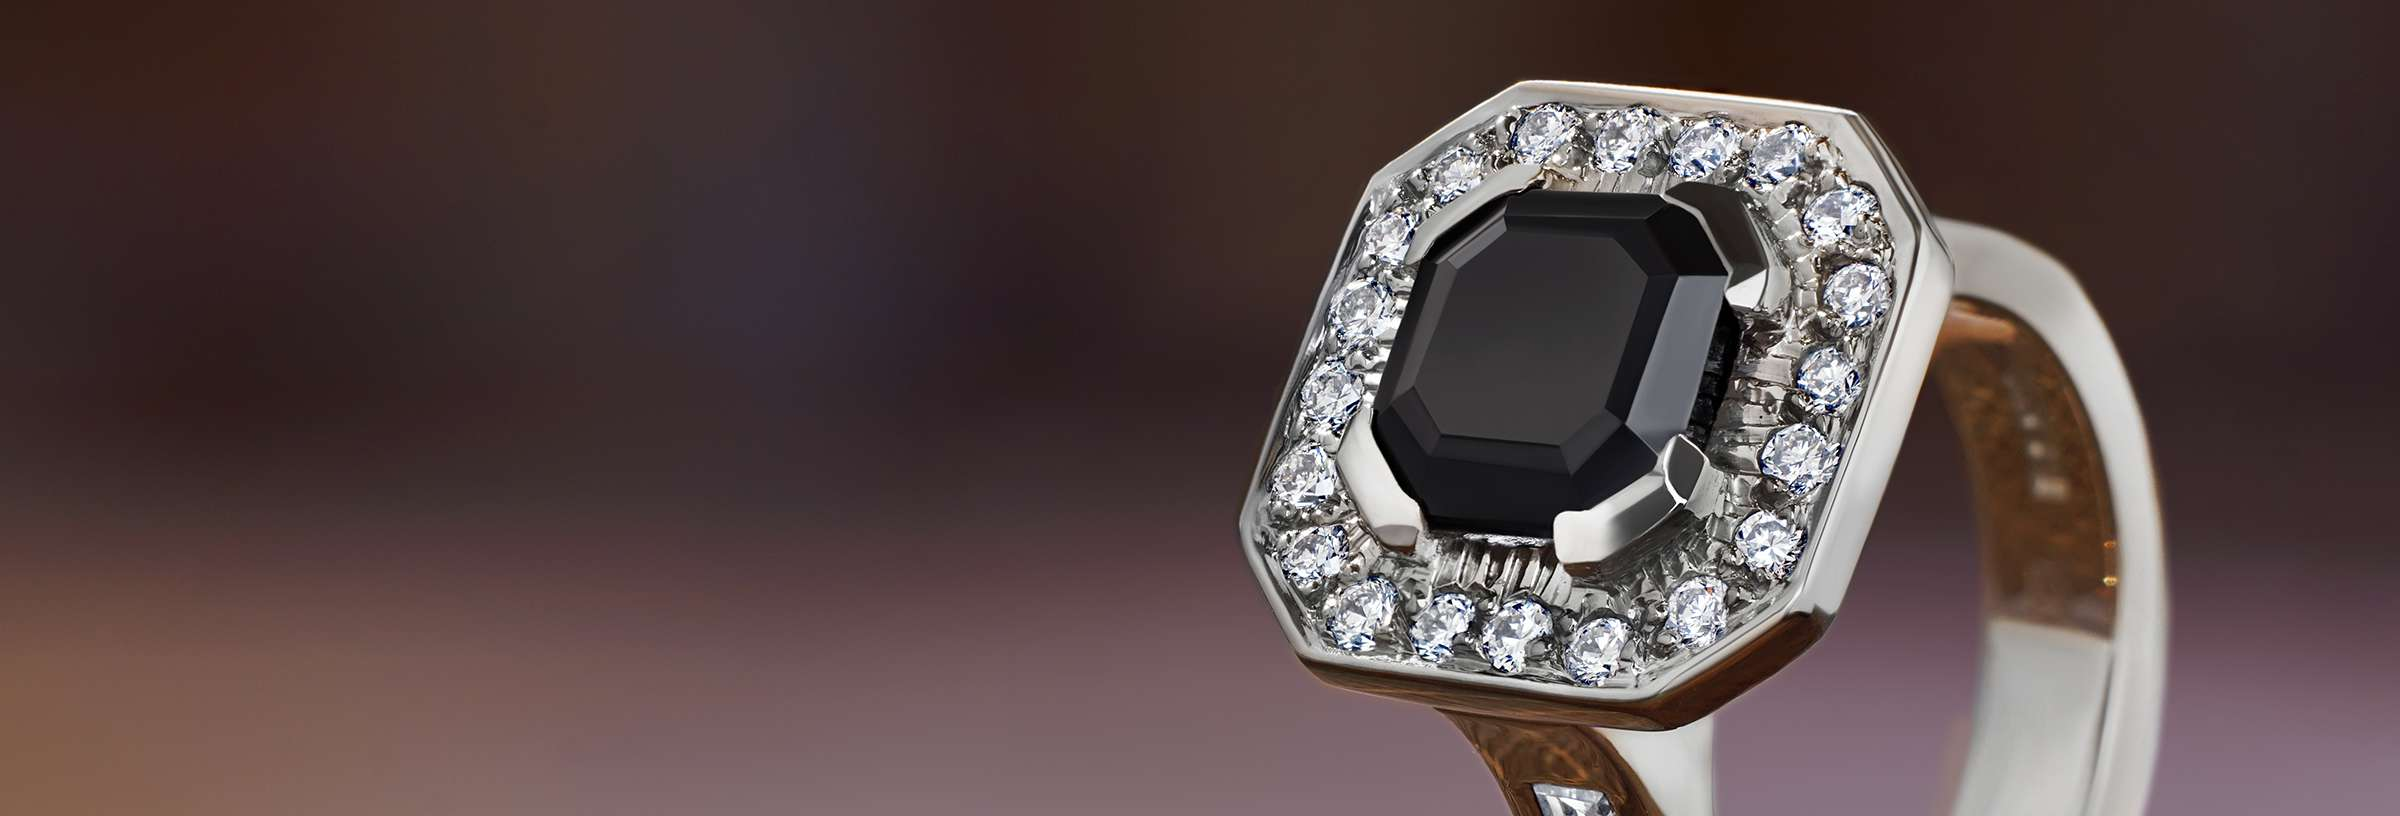 Onyx Engagement Rings Information